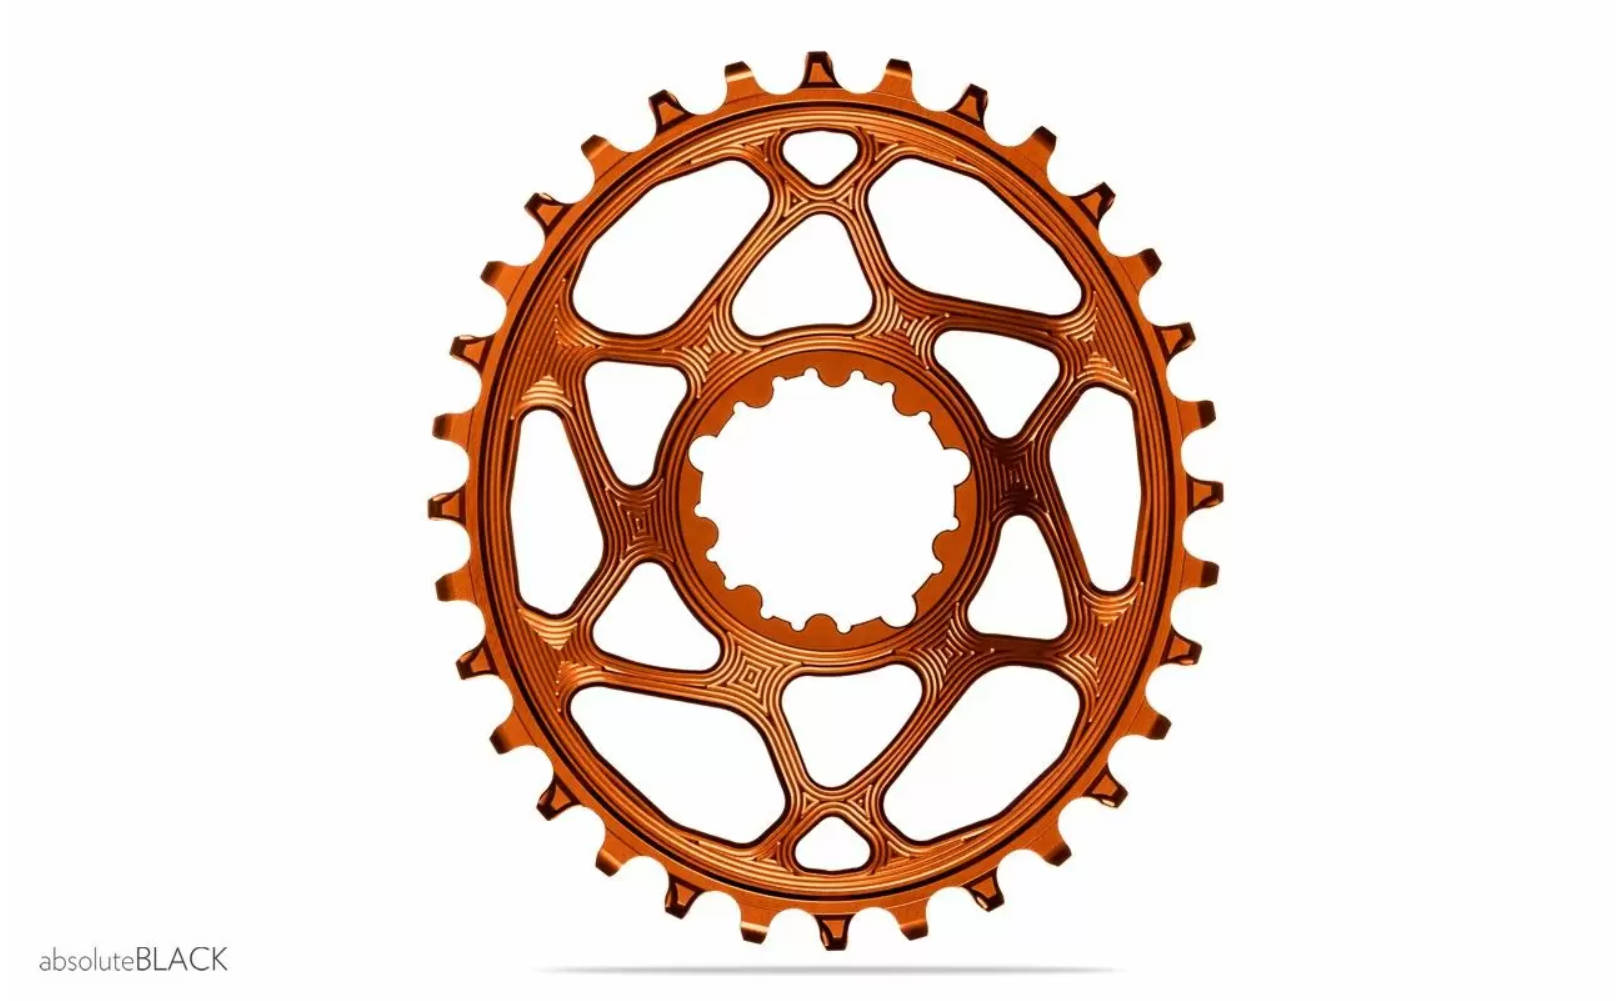 absoluteBLACK Oval Boost N/W Chainring For SRAM 3MM Offset